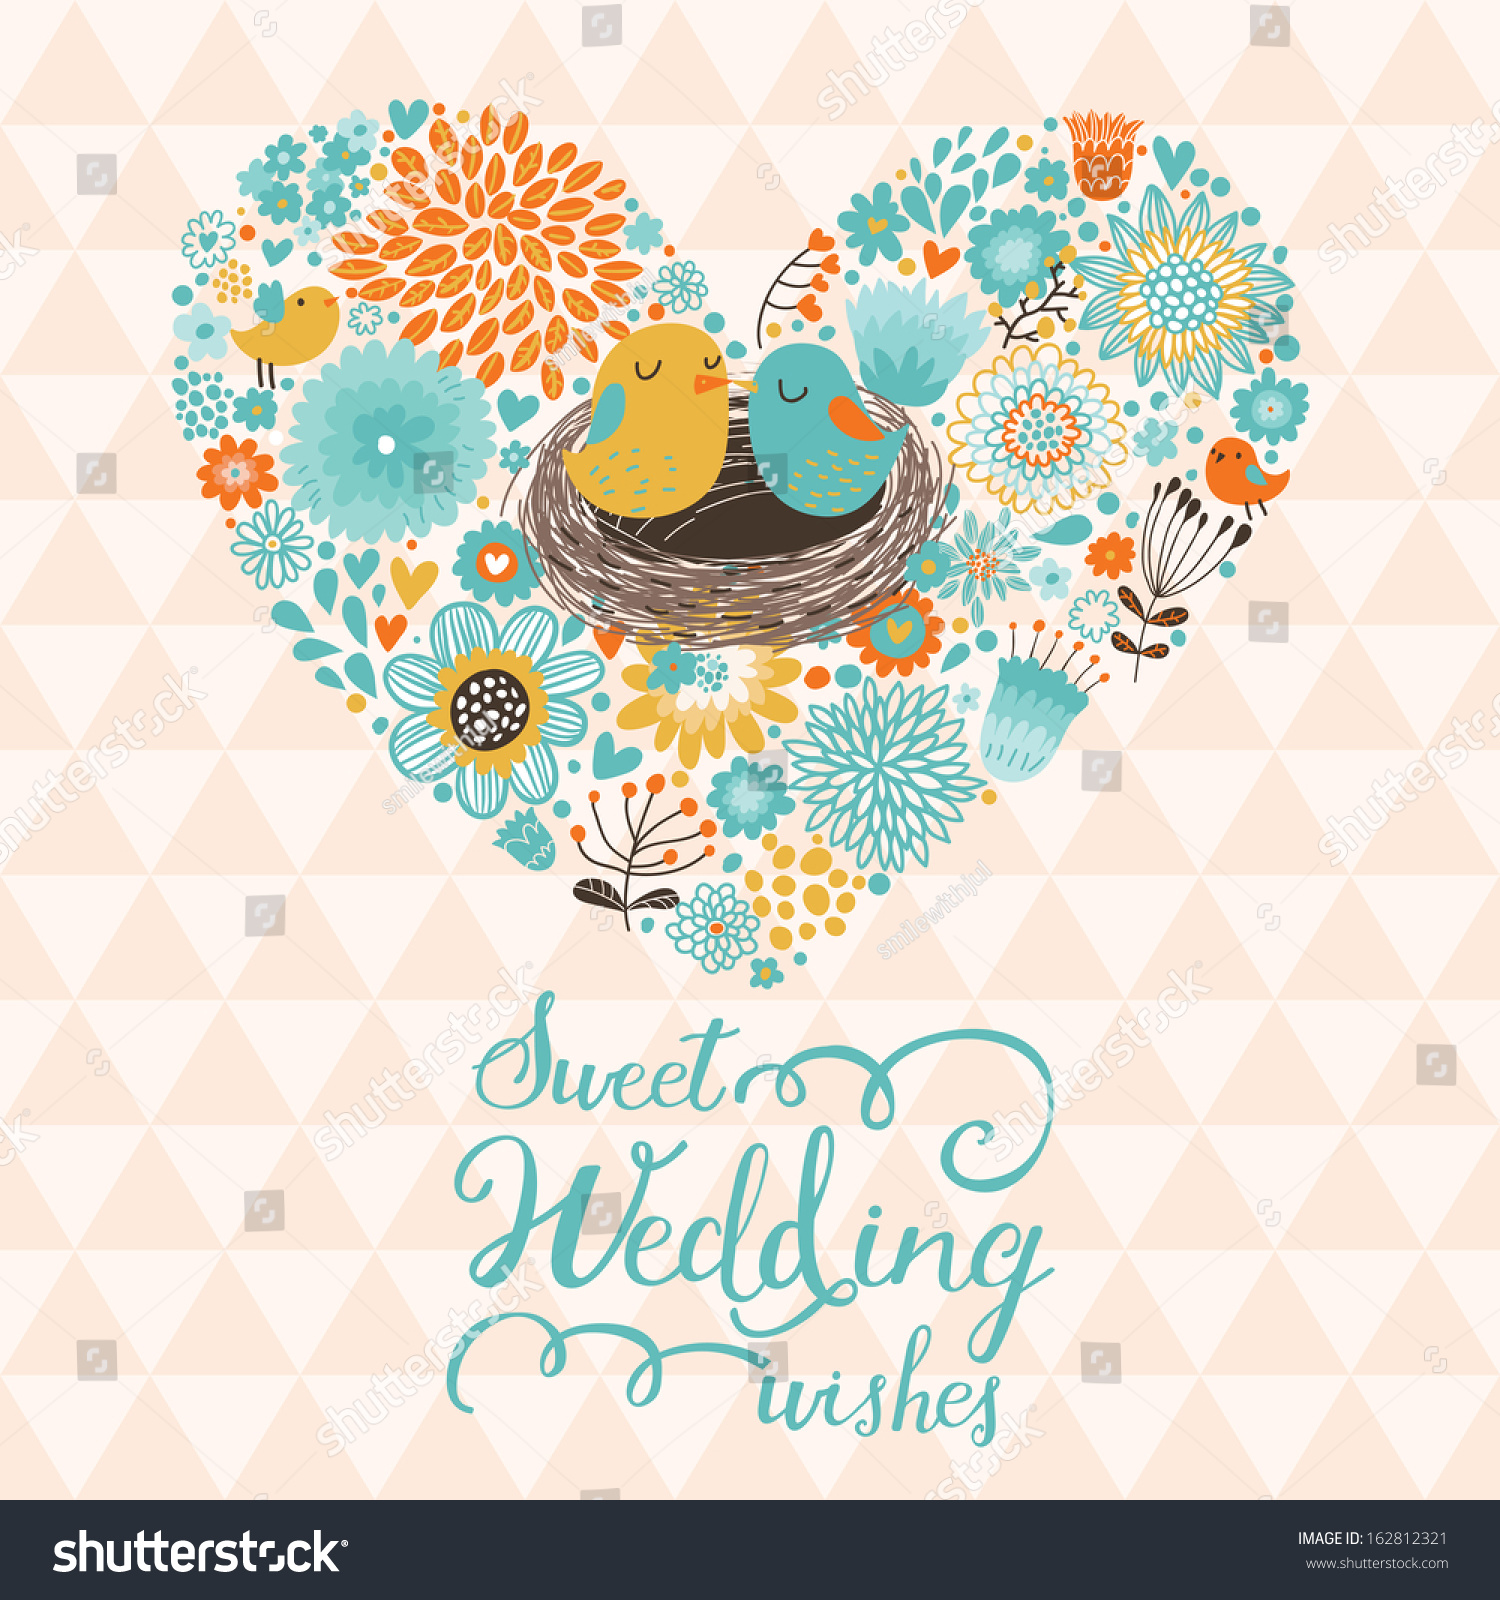 sweet wedding wishes cute save date stock vector 162812321